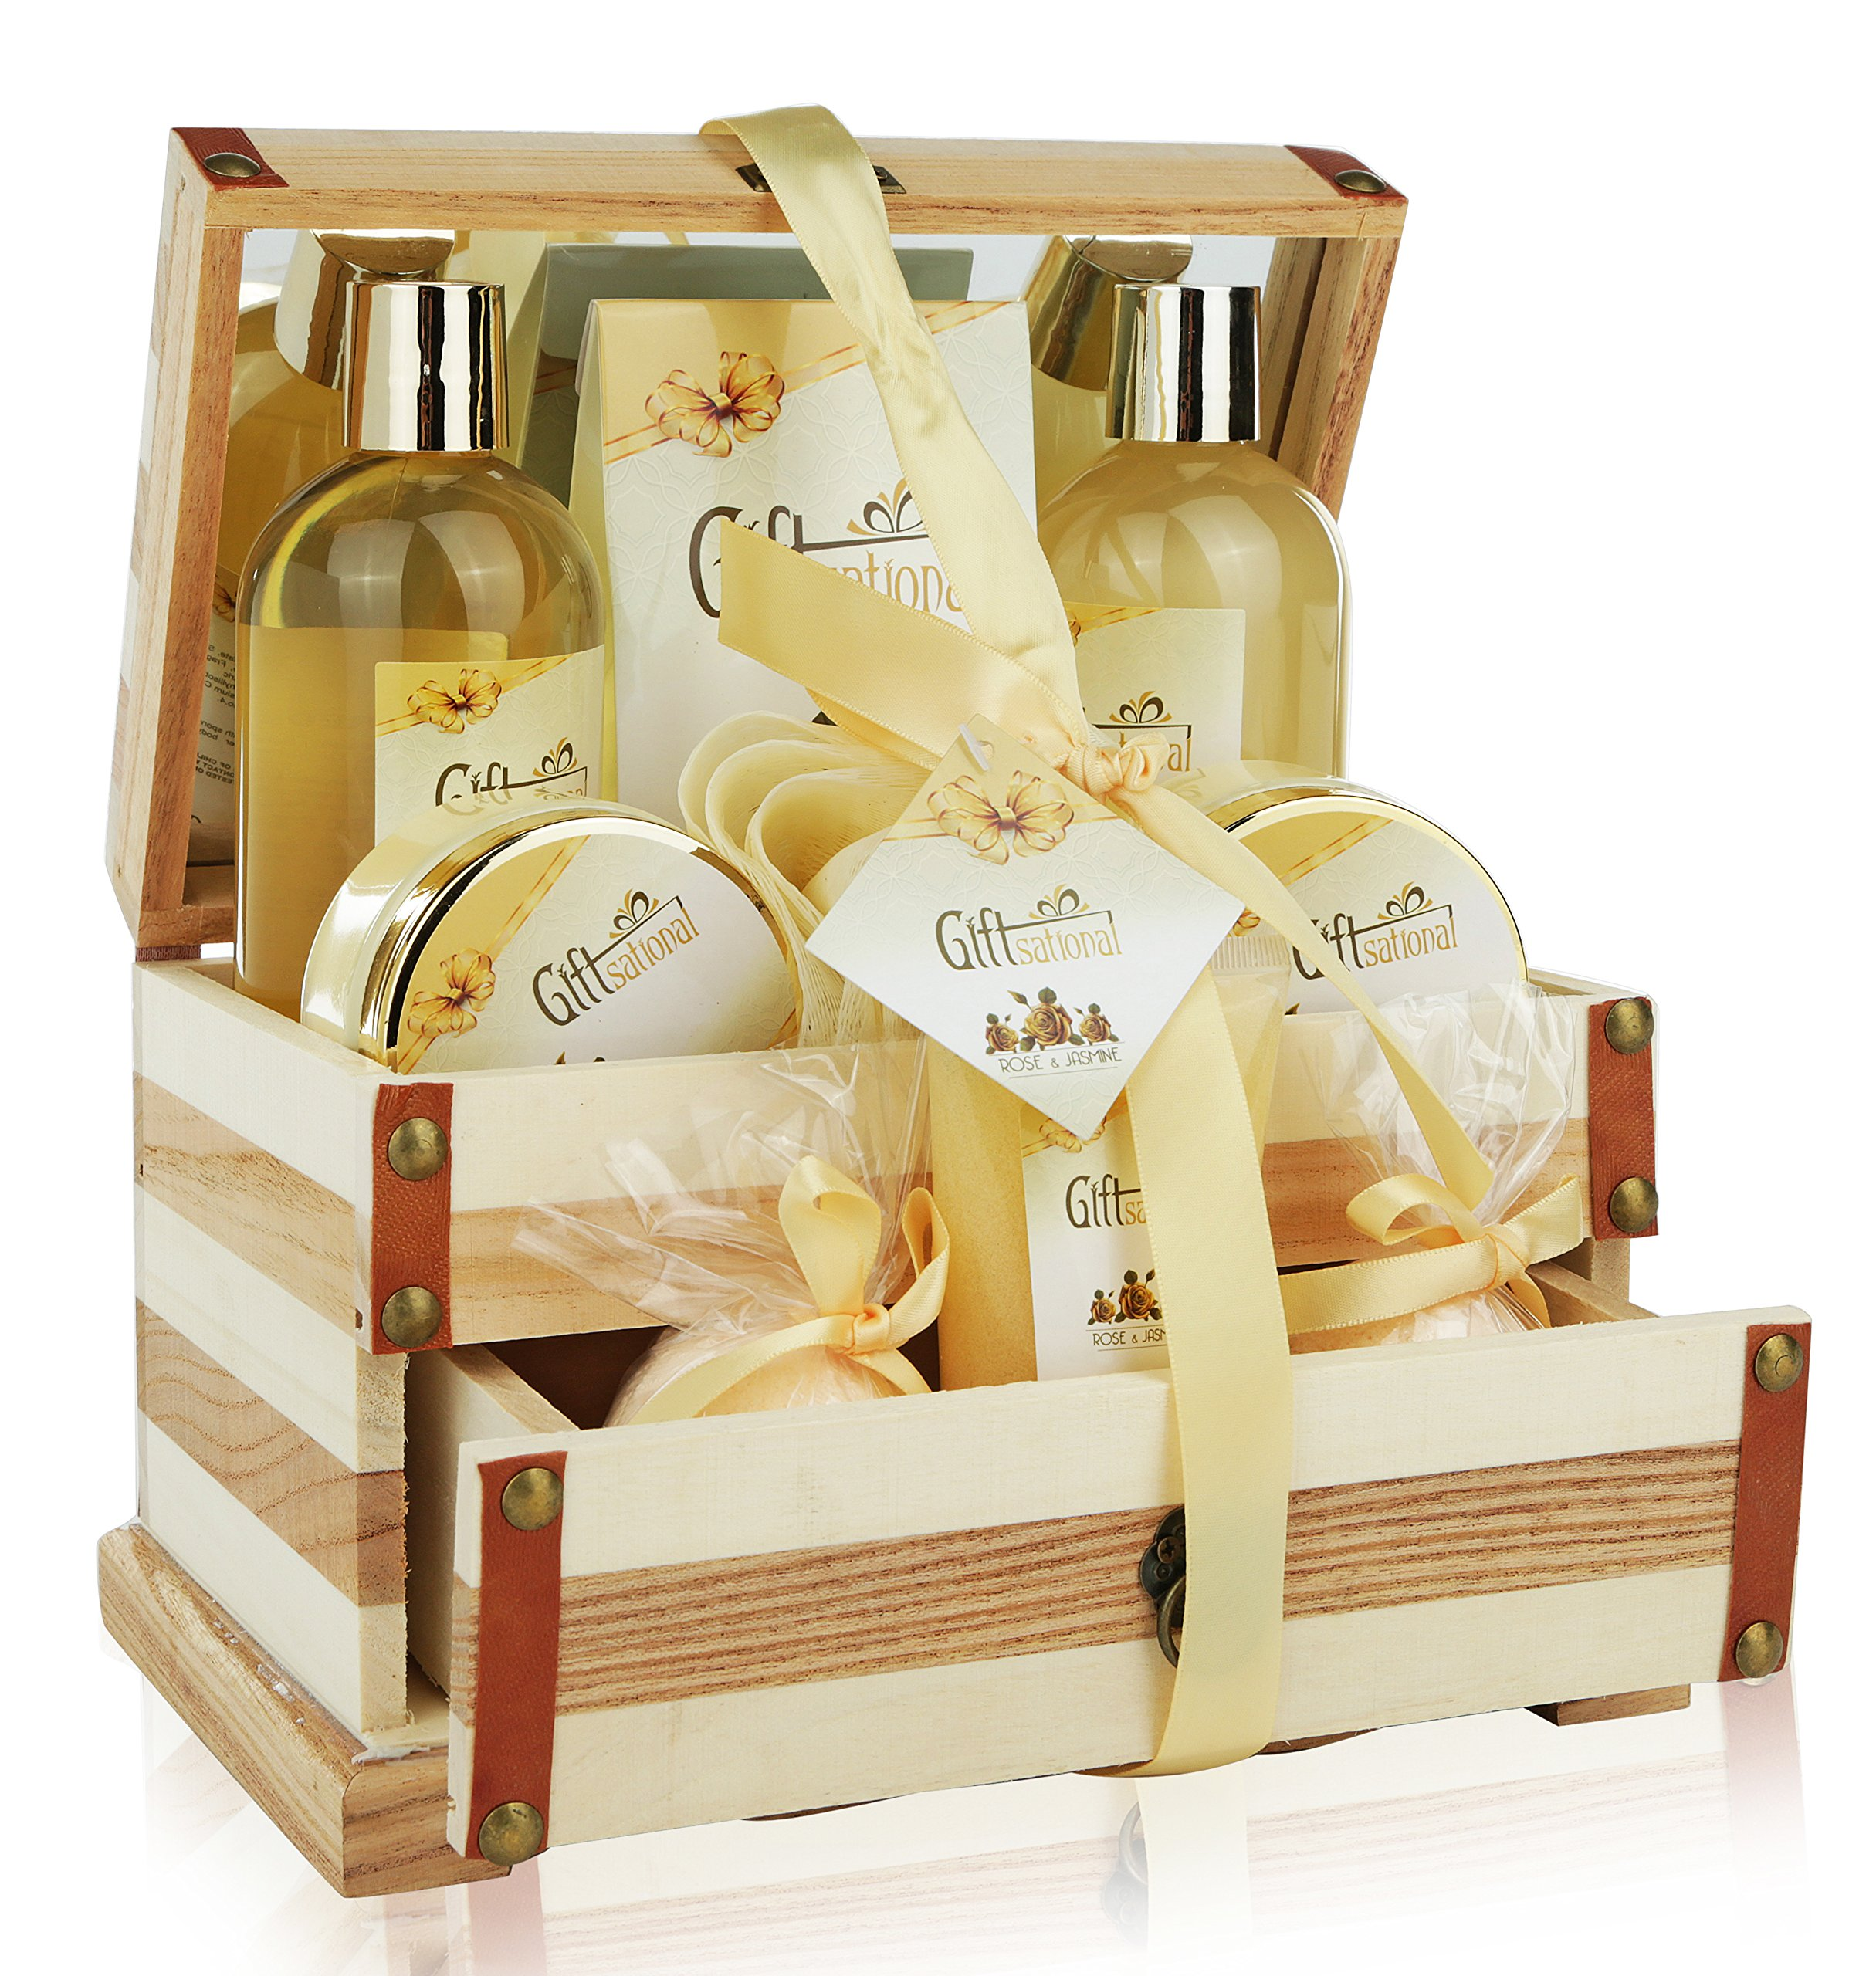 Spa Gift Basket Refreshing Rose & Jasmine Fragrance, Beautiful Wooden Gift Box with Mirror, Perfect Wedding, Birthday or Anniversary Gift, Bath gift Set Includes Shower Gel, Bath Bombs and More!